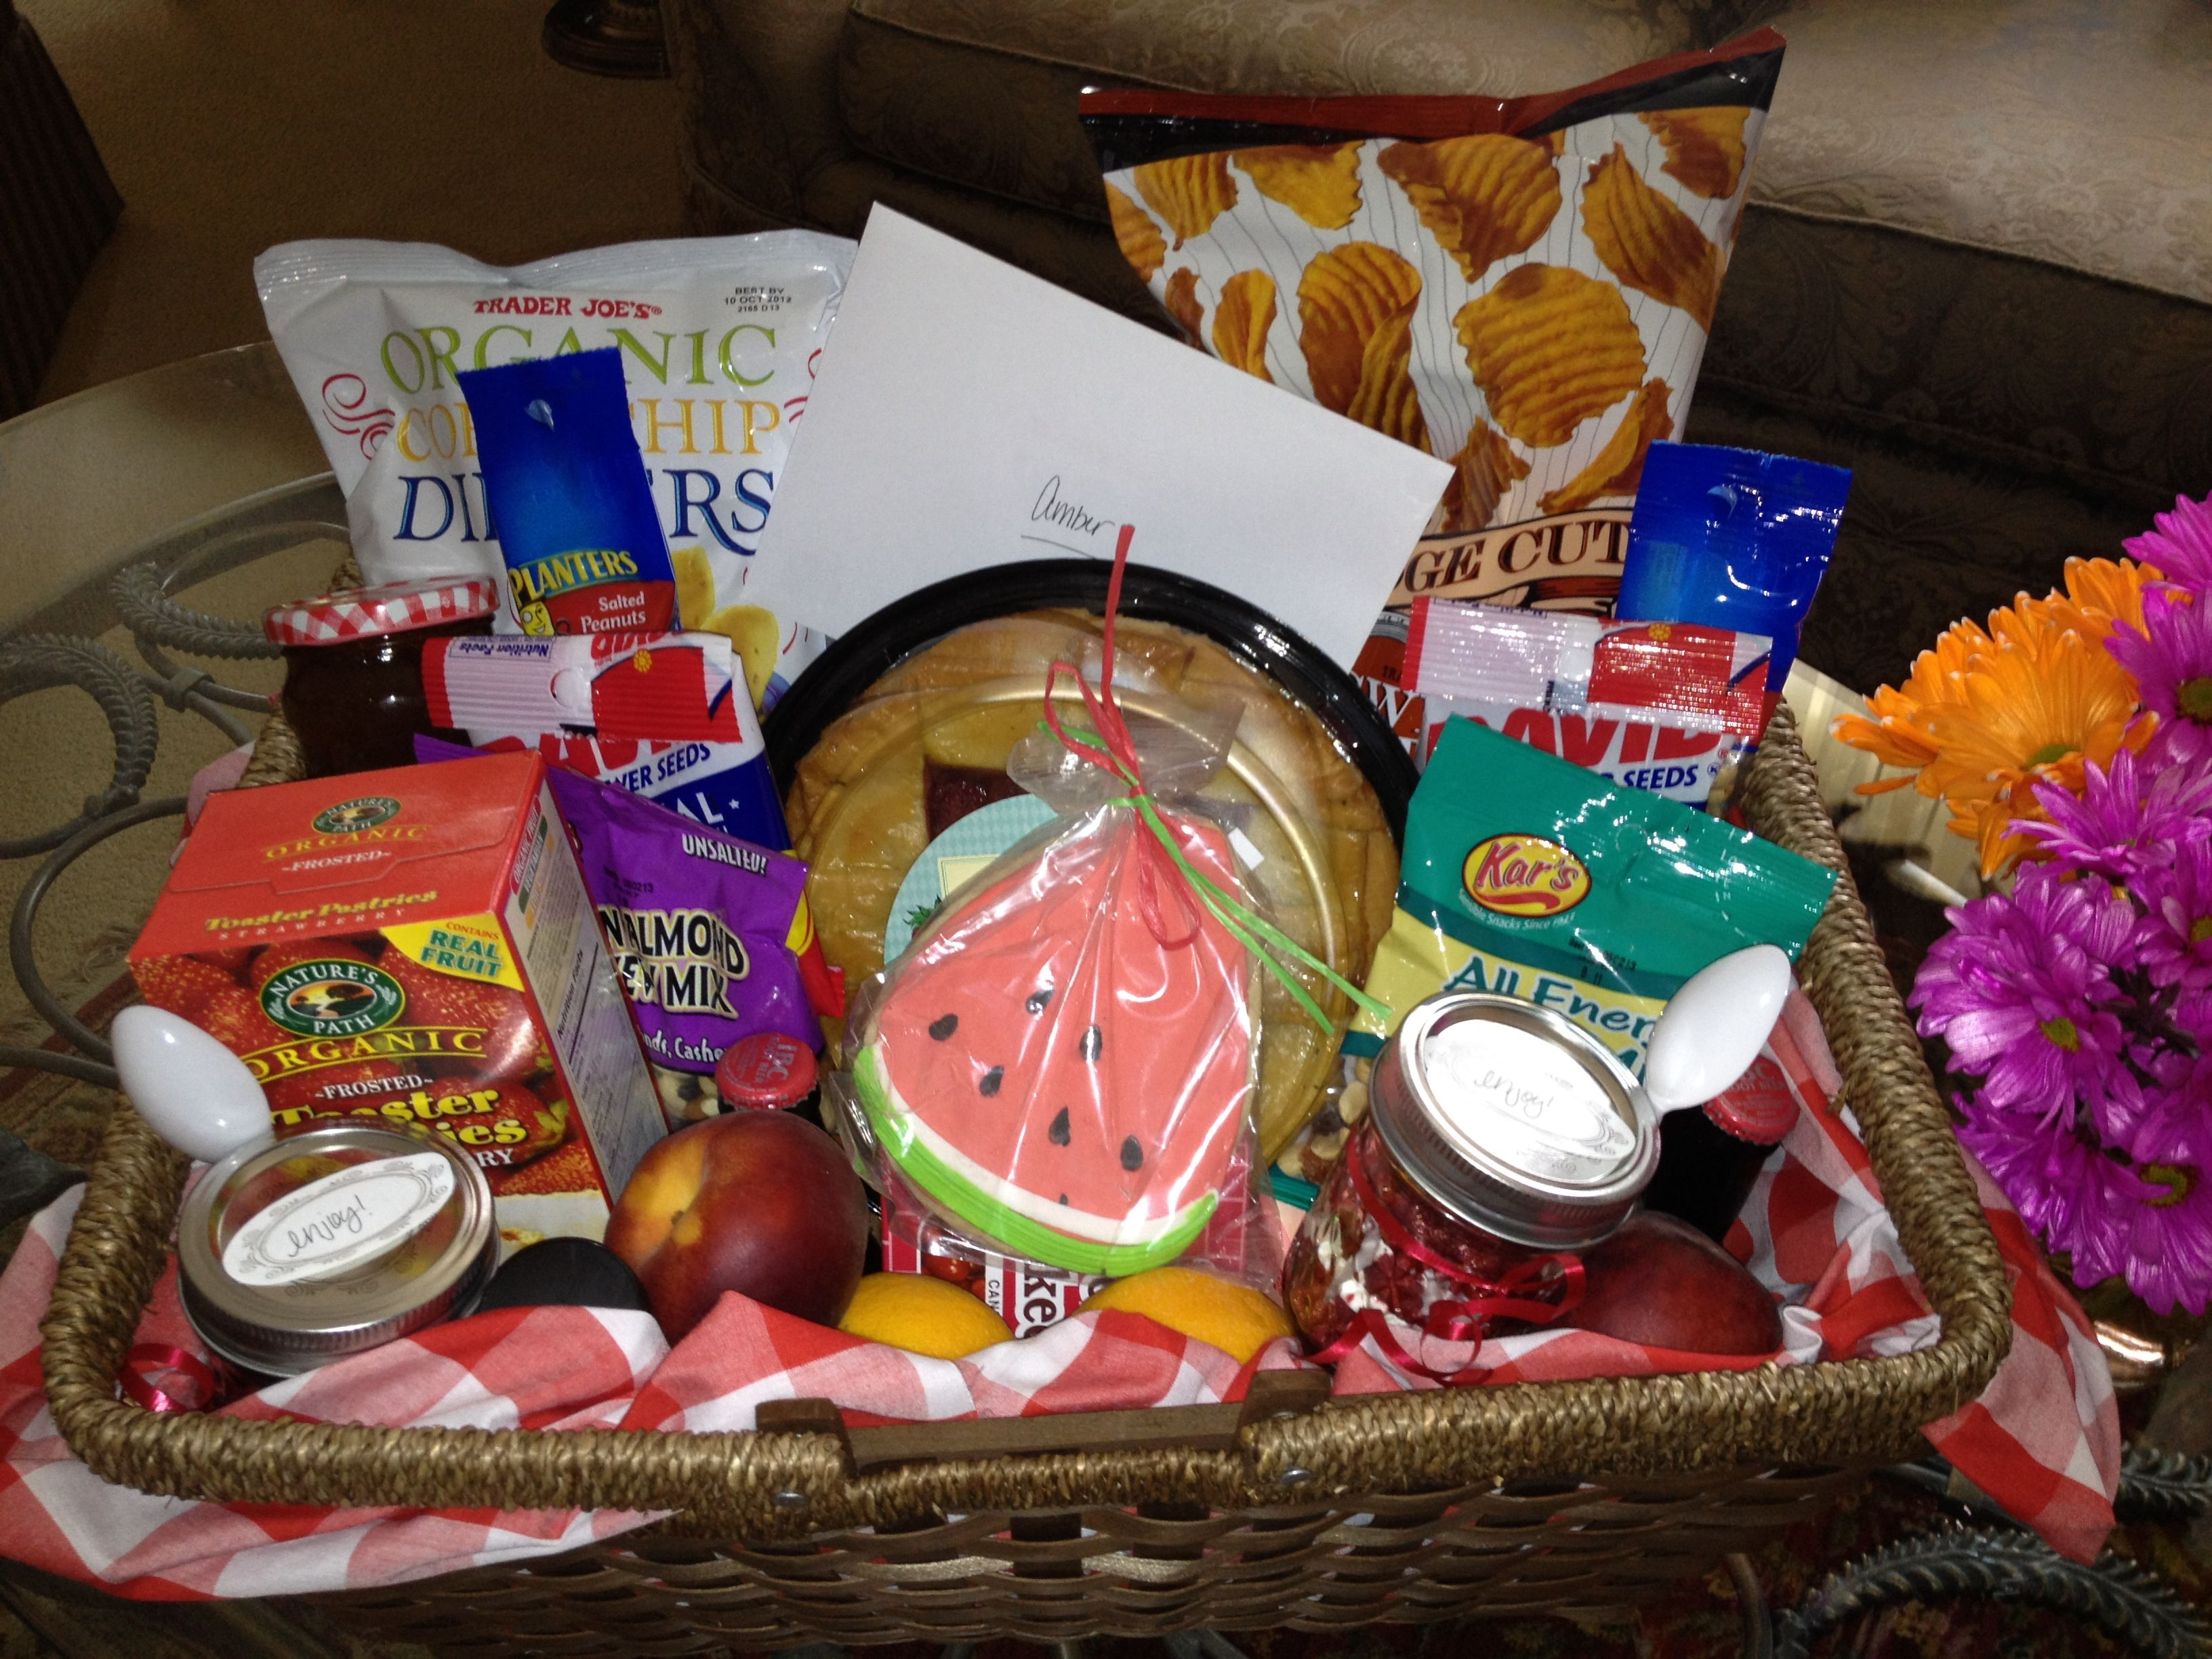 Creative Picnic Basket Ideas : Summer picnic themed gift basket my creations